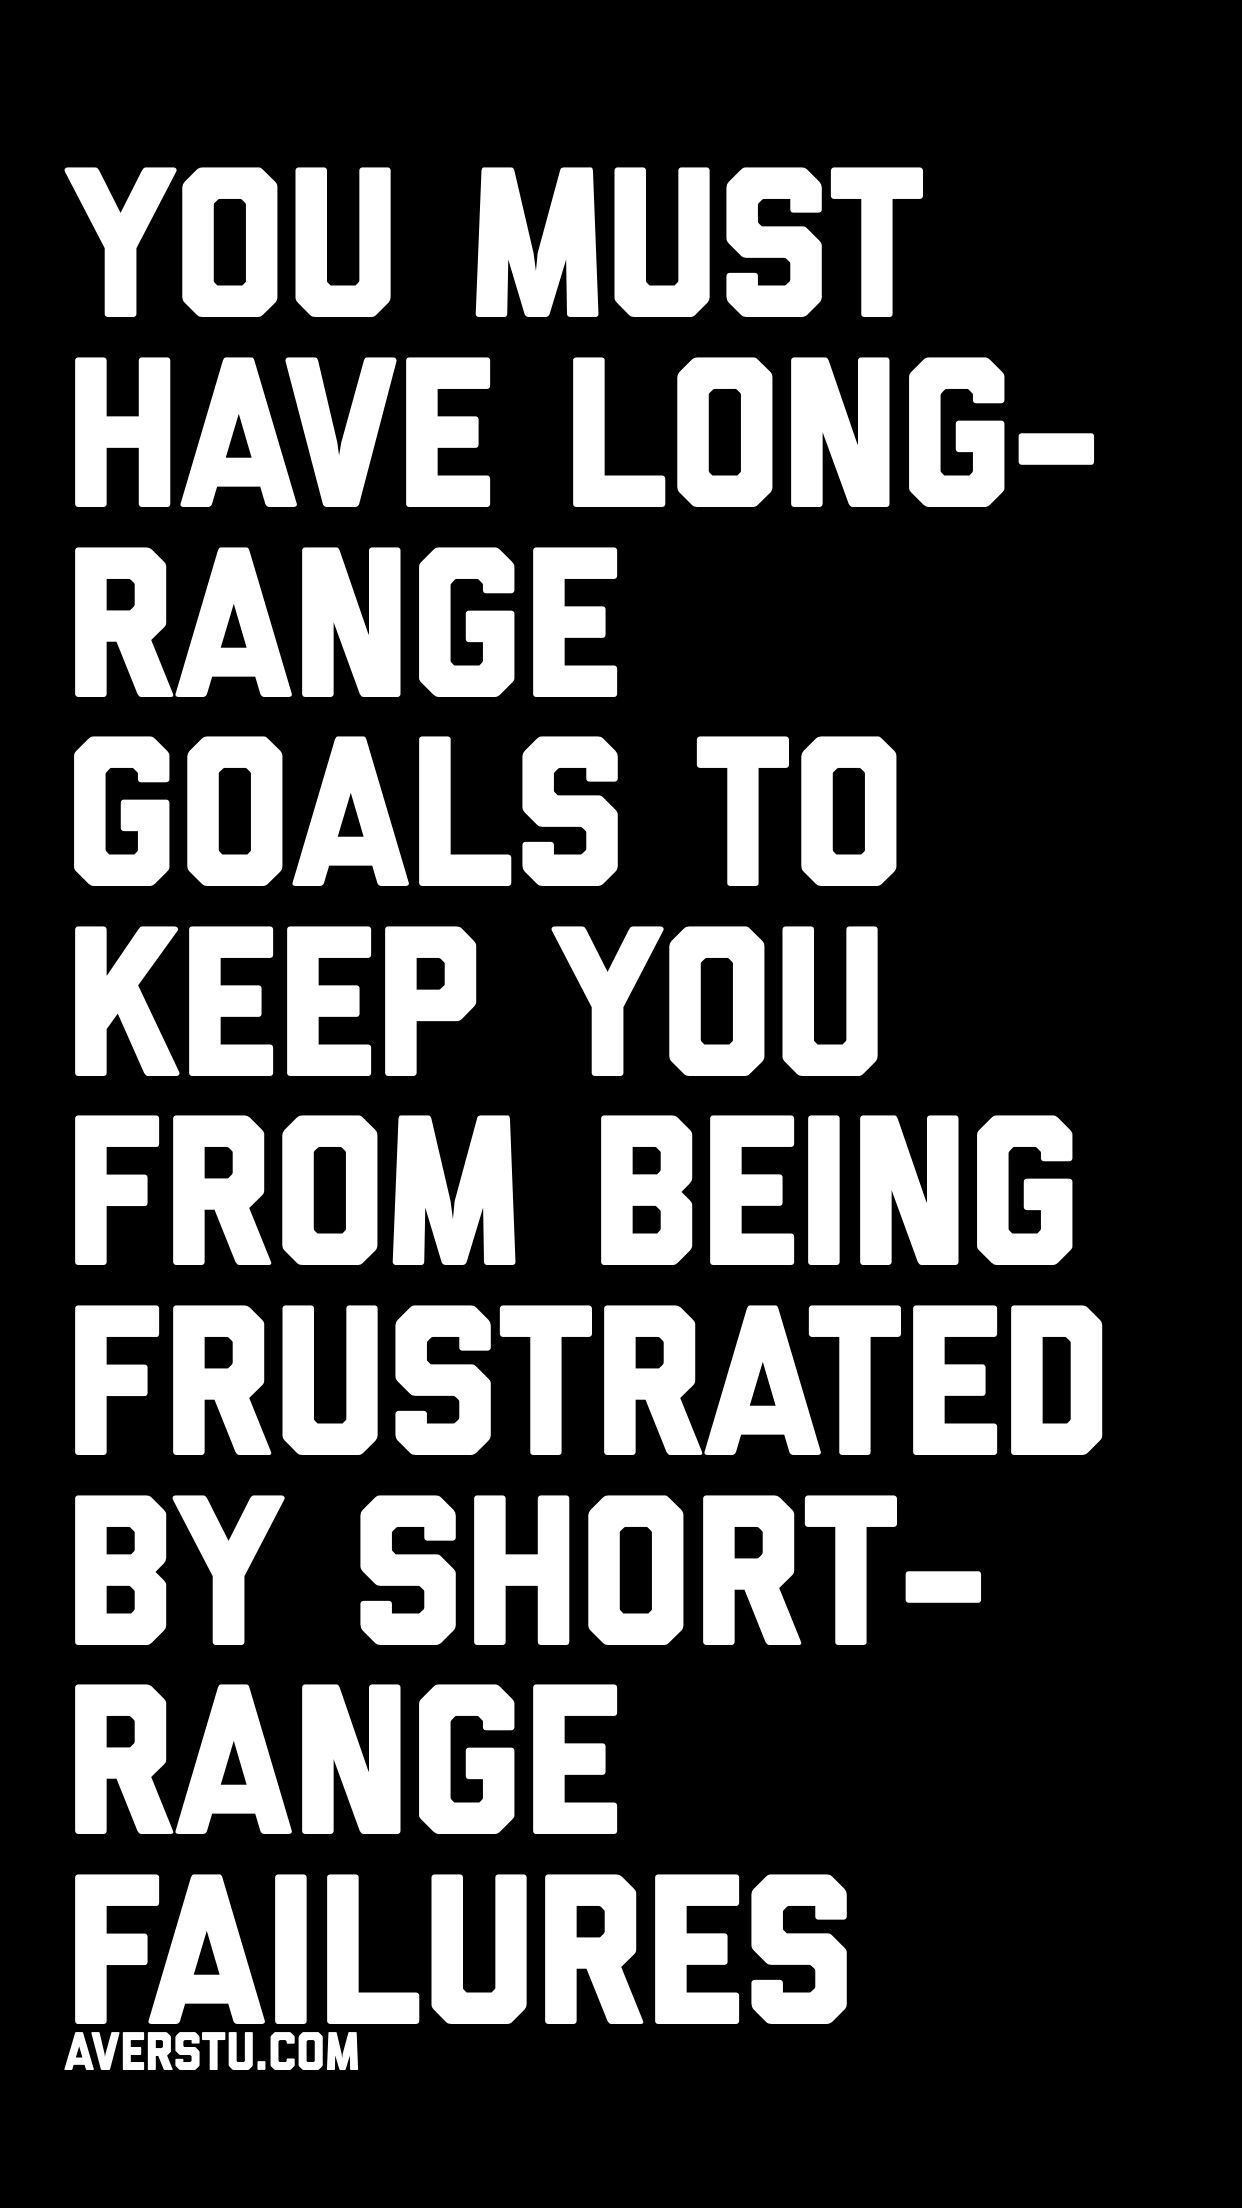 You Must Have Long Range Goals To Keep You From Being Frustrated By